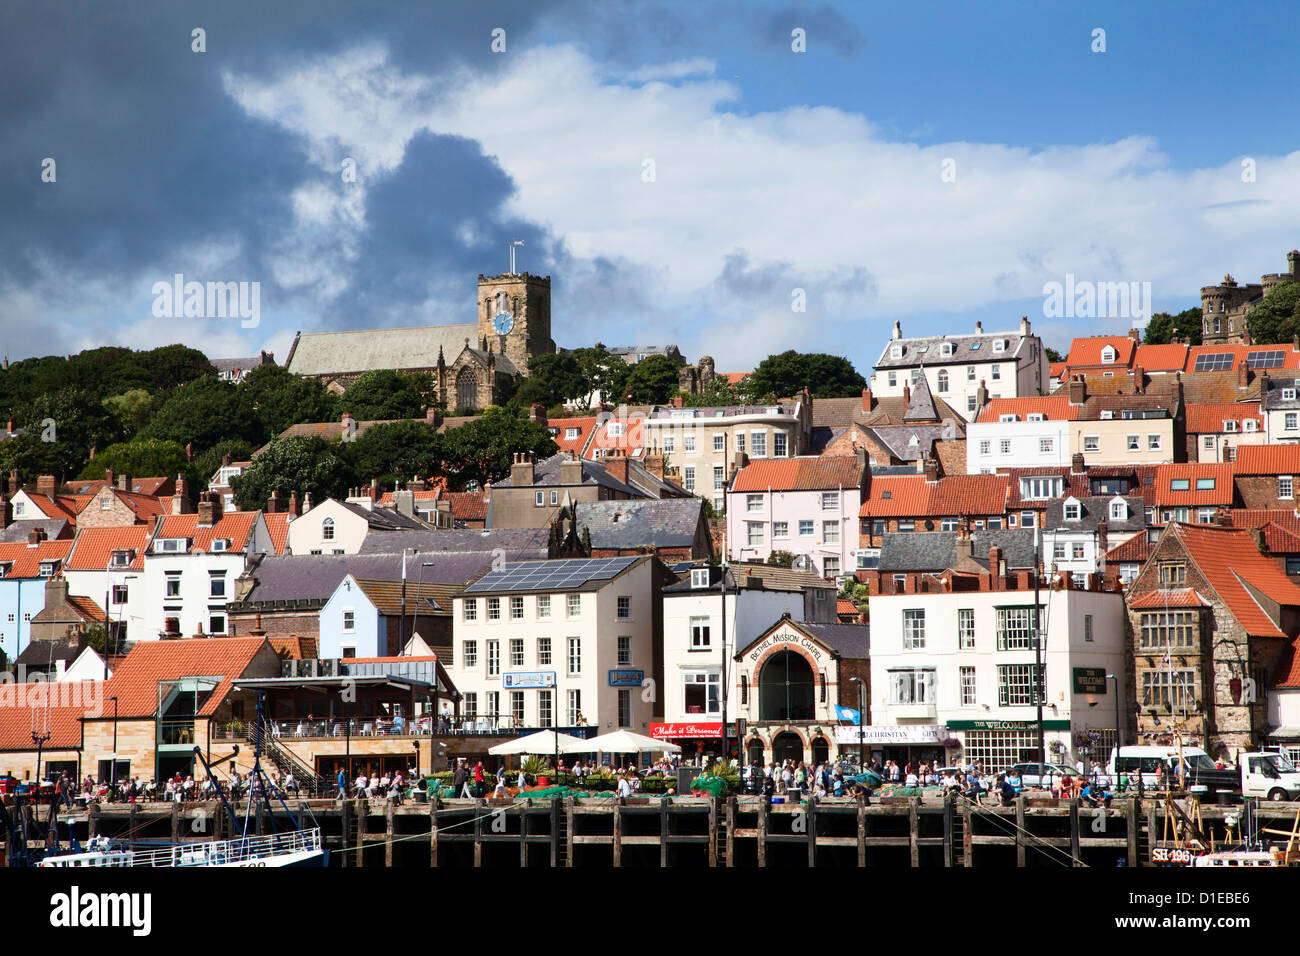 Quayside below St. Marys Church at Scarborough, North Yorkshire, Yorkshire, England, United Kingdom, Europe - Stock Image